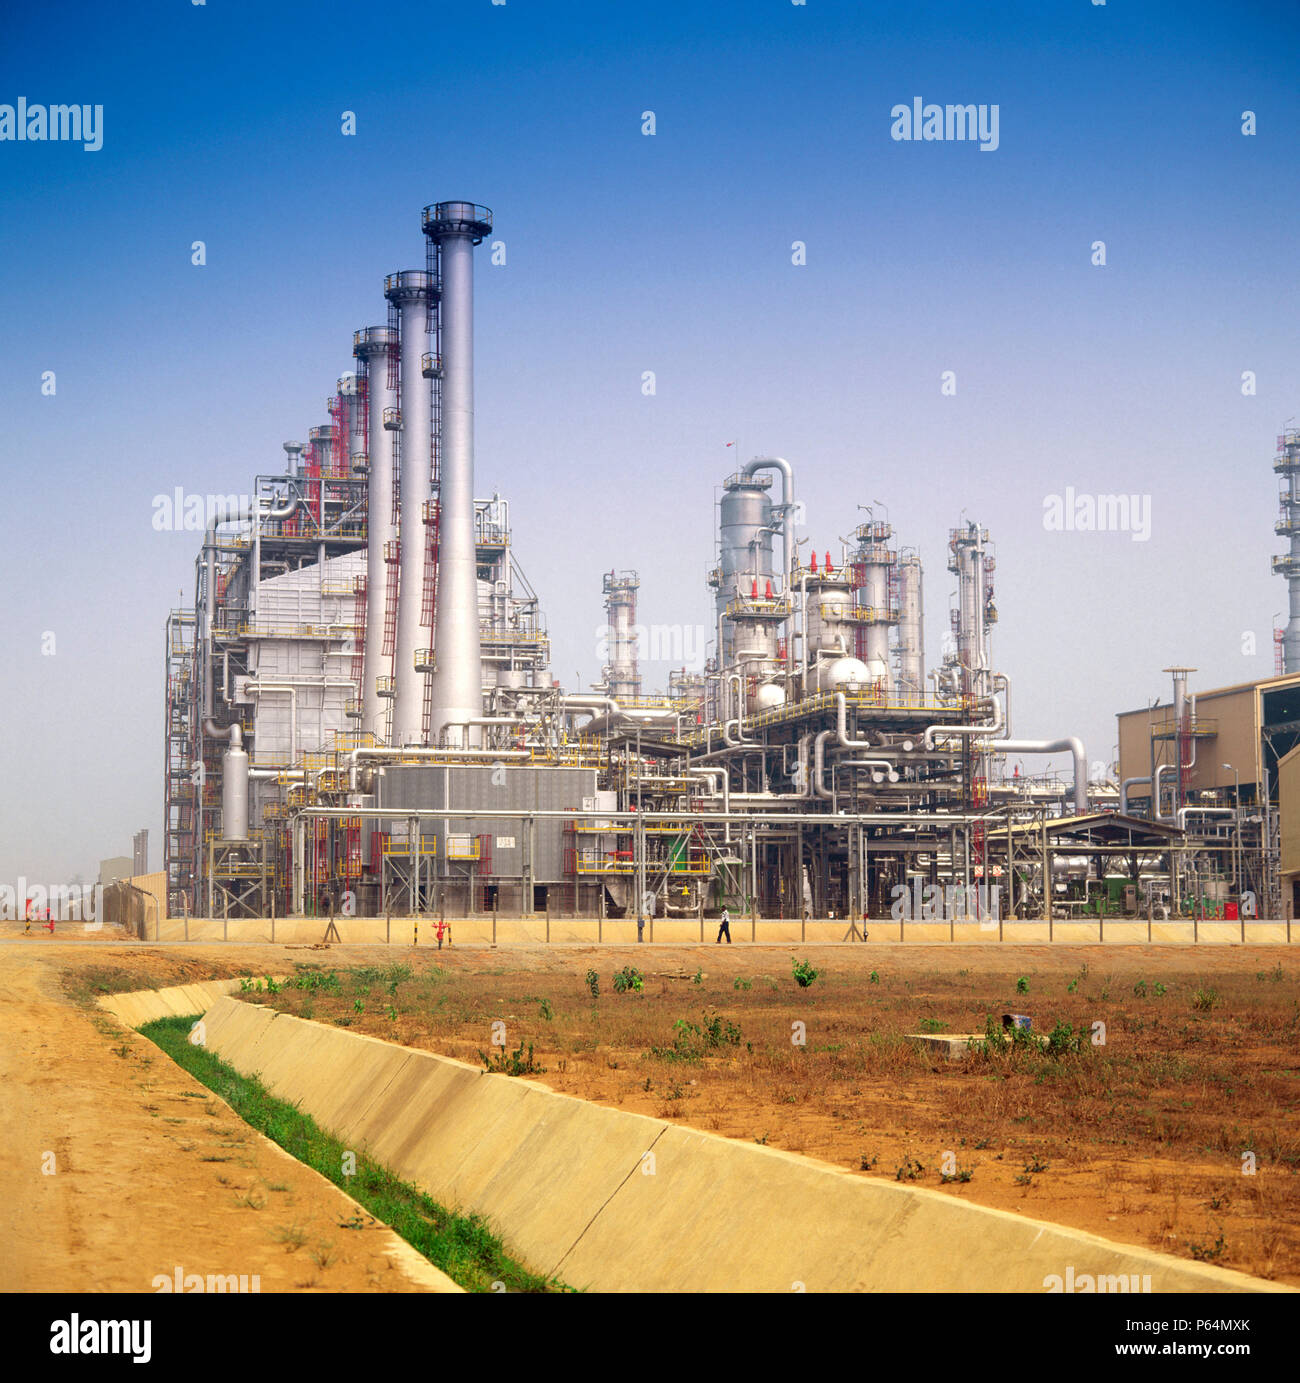 Oil refinery and petrochemical installations in Nigeria - Stock Image